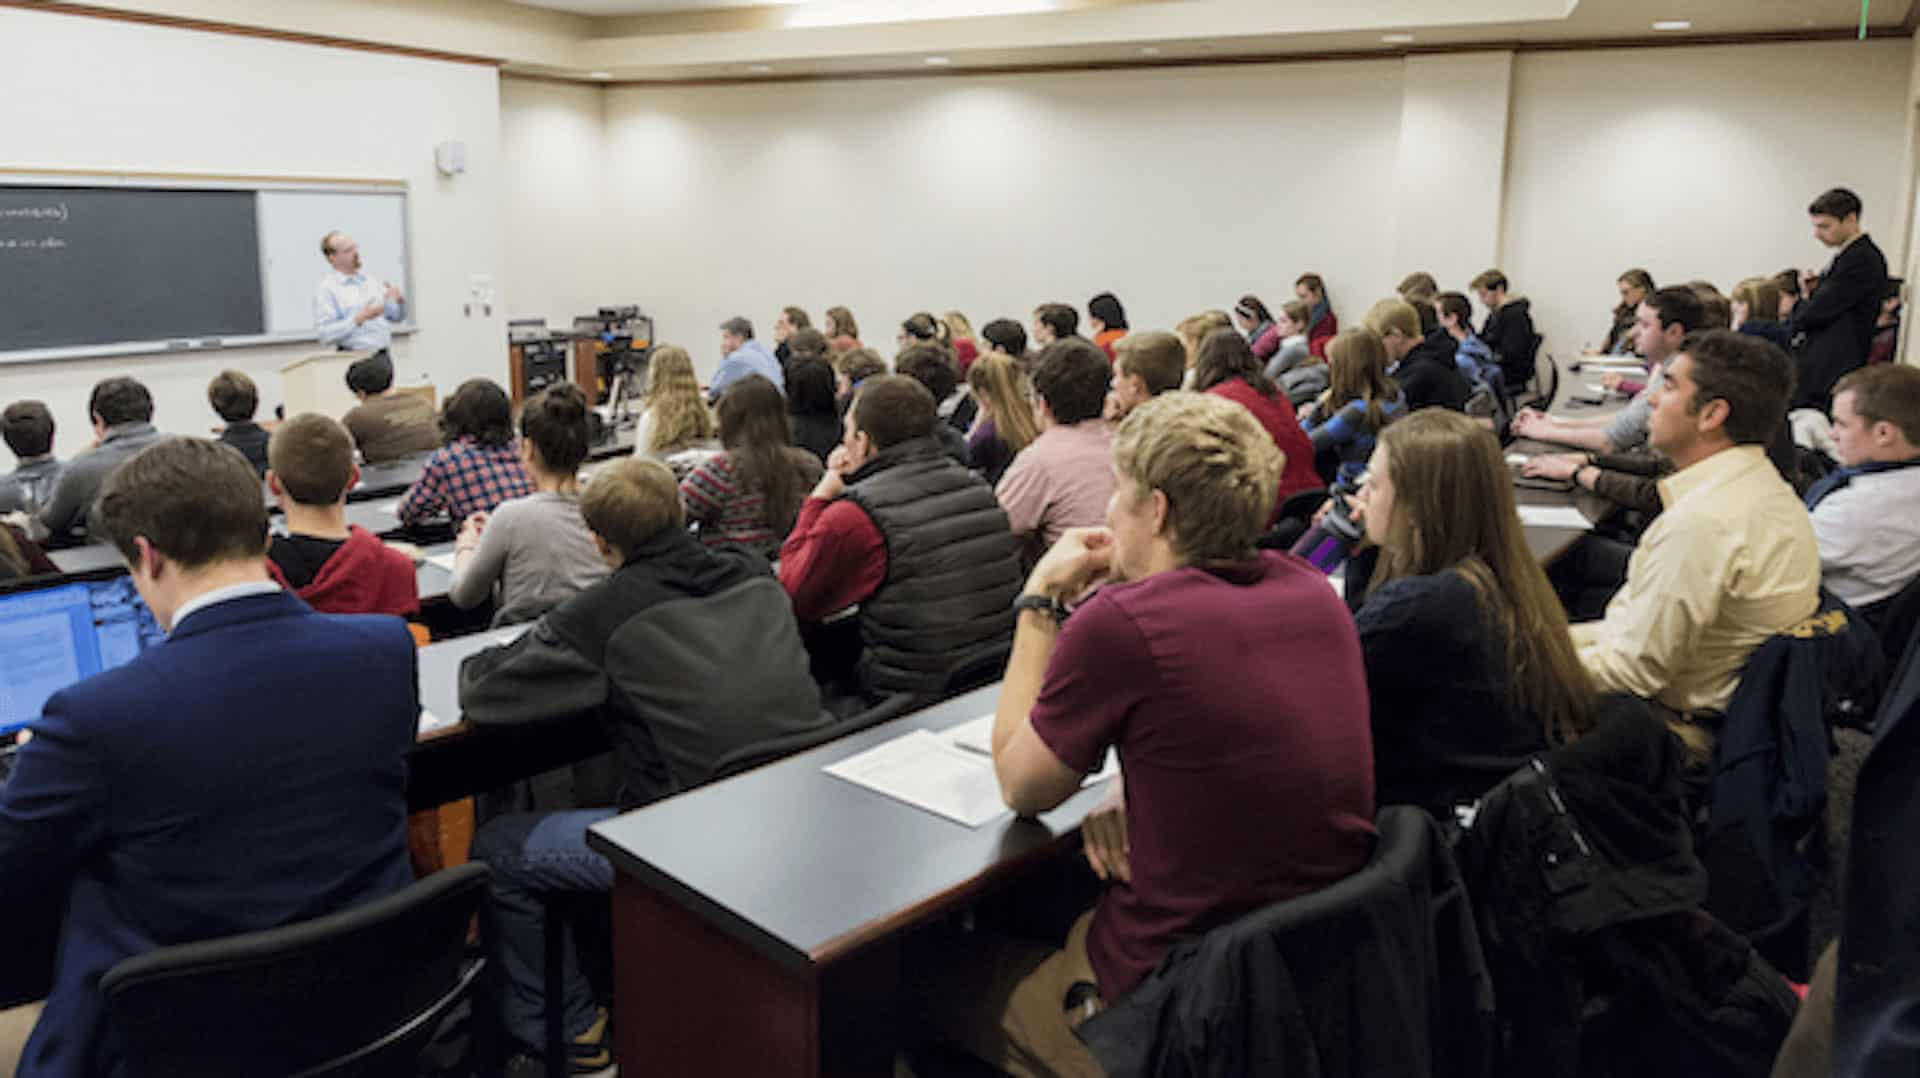 Room full of students listening to a lecture.